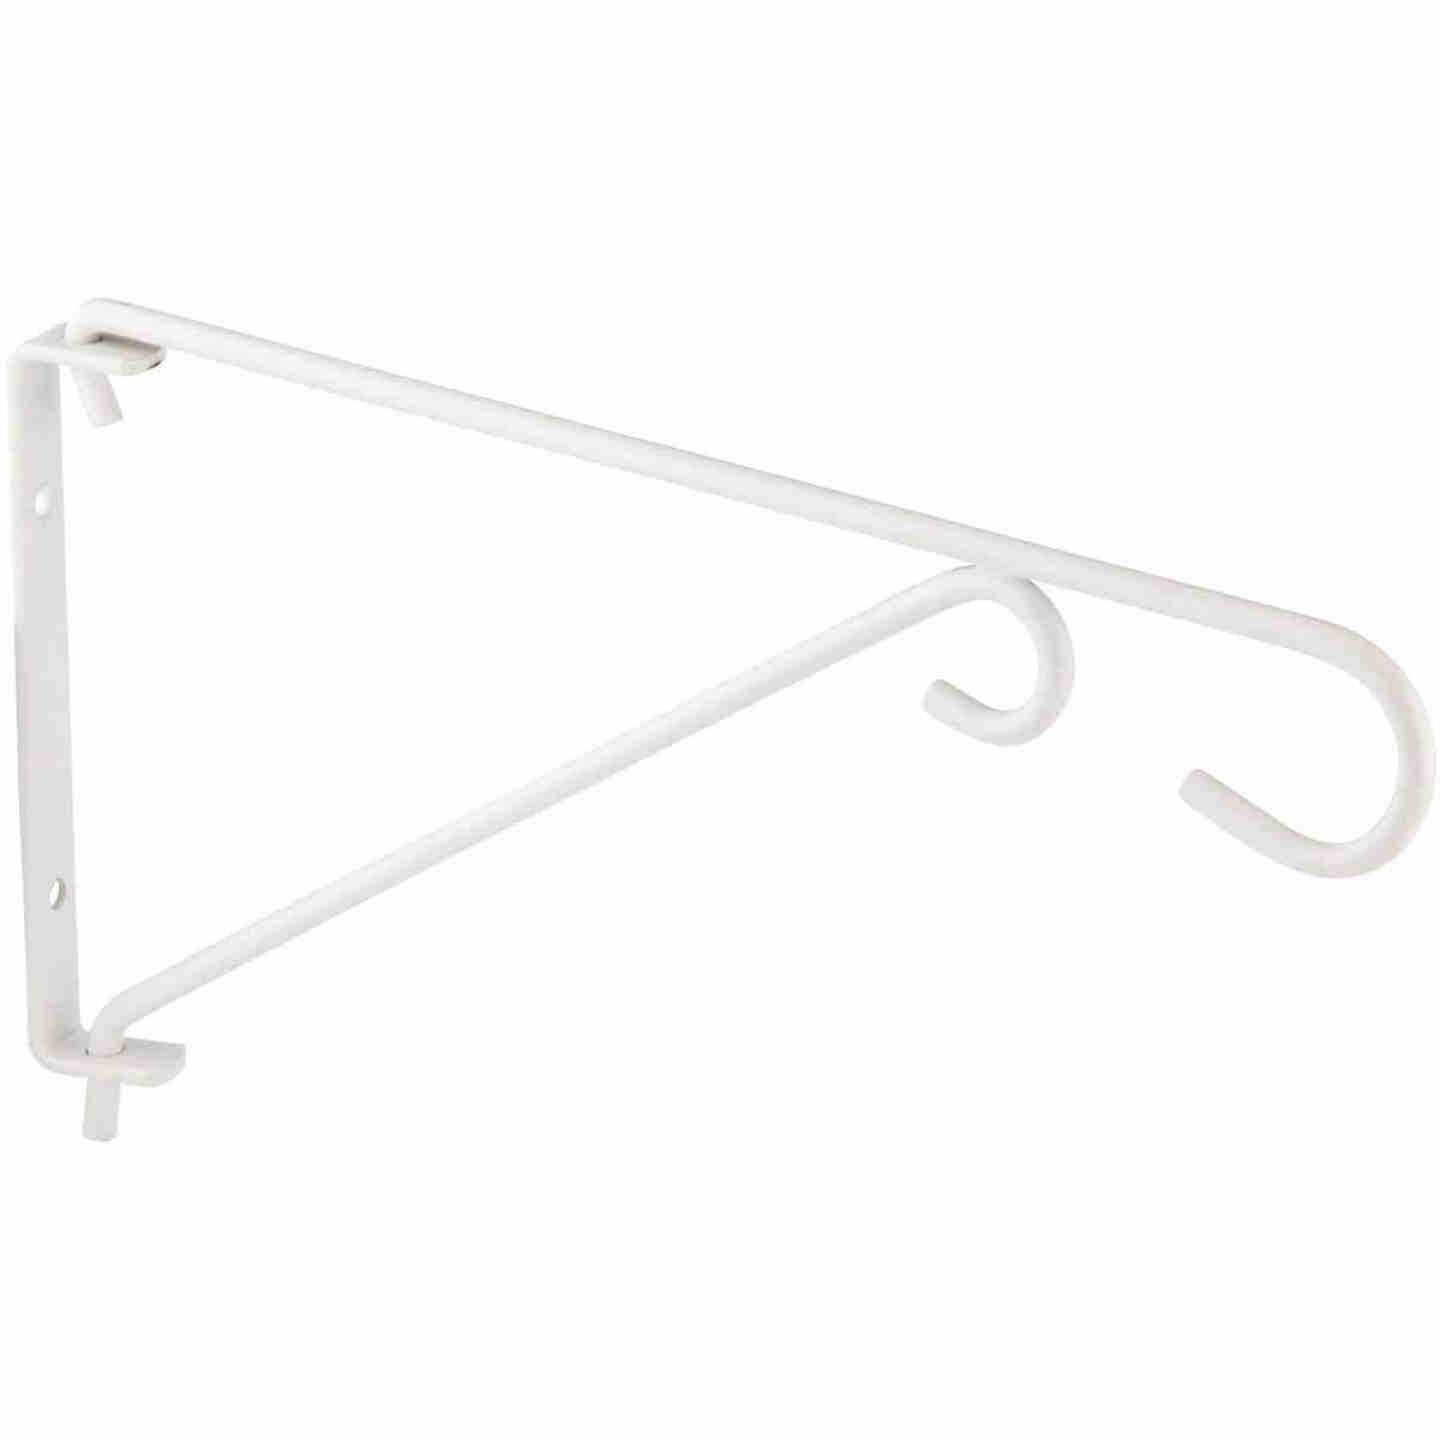 National 9 In. White Steel Swivel Hanging Plant Bracket Image 4